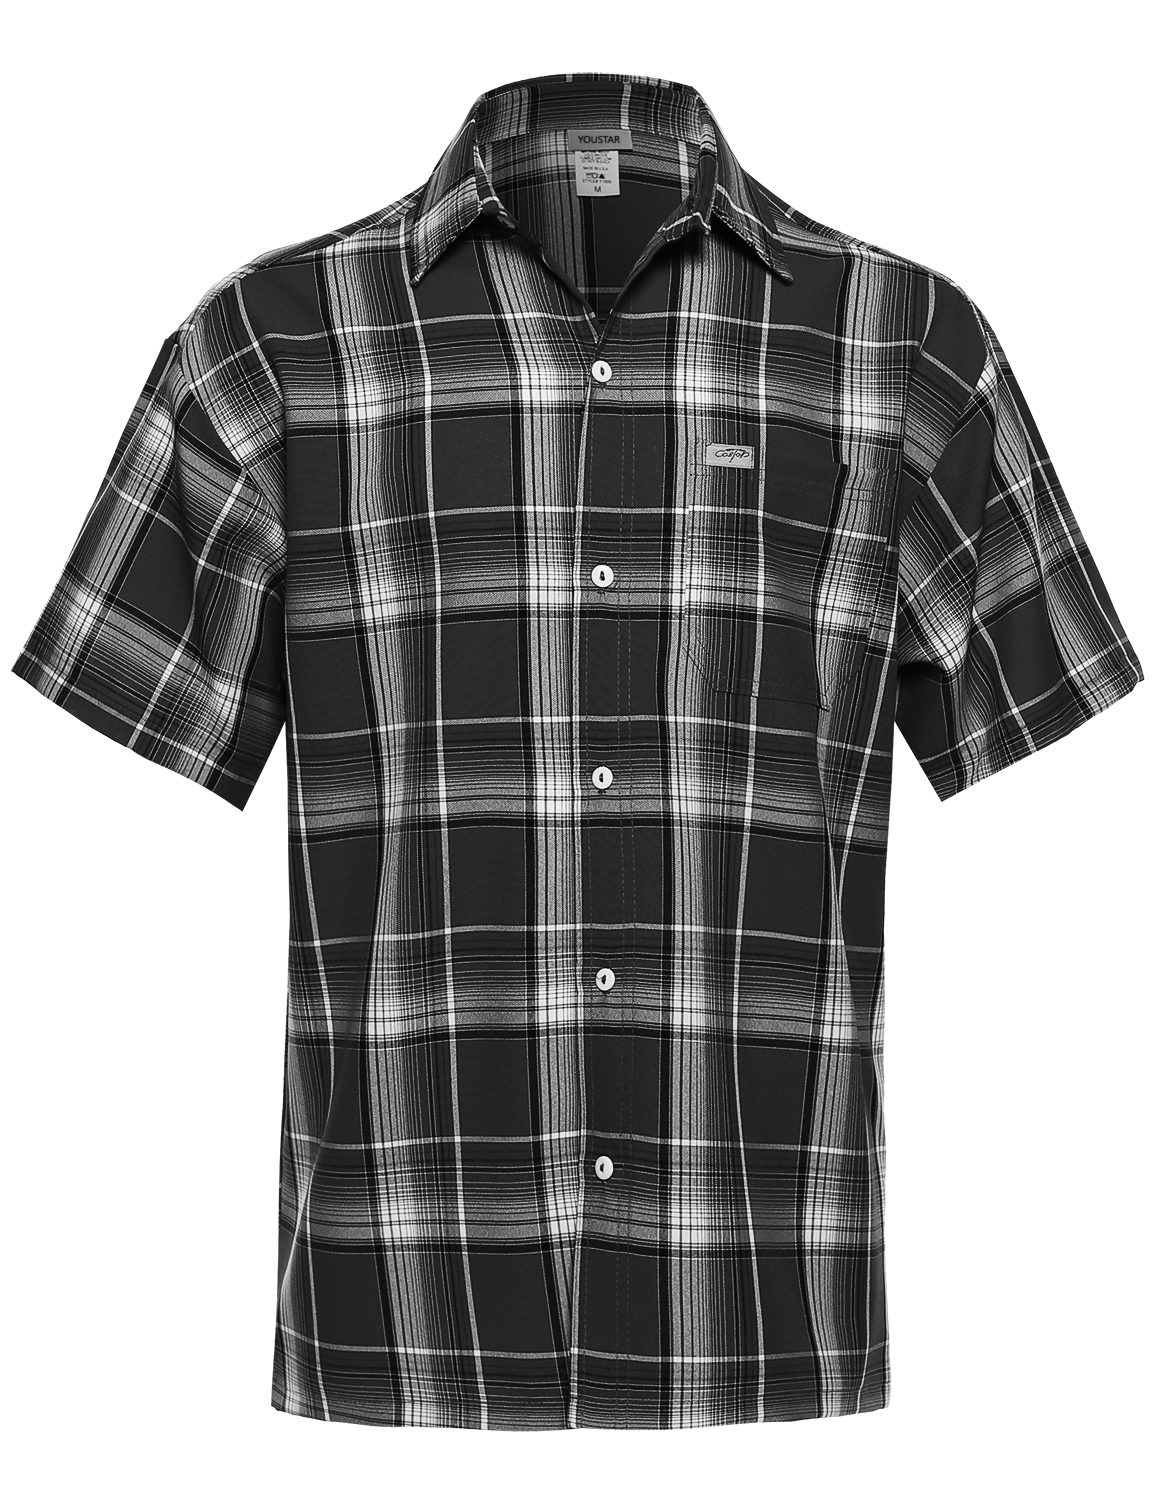 Fashionoutfit men 39 s loose fit plaid checkered short sleeve for Best short sleeve button down shirts reddit